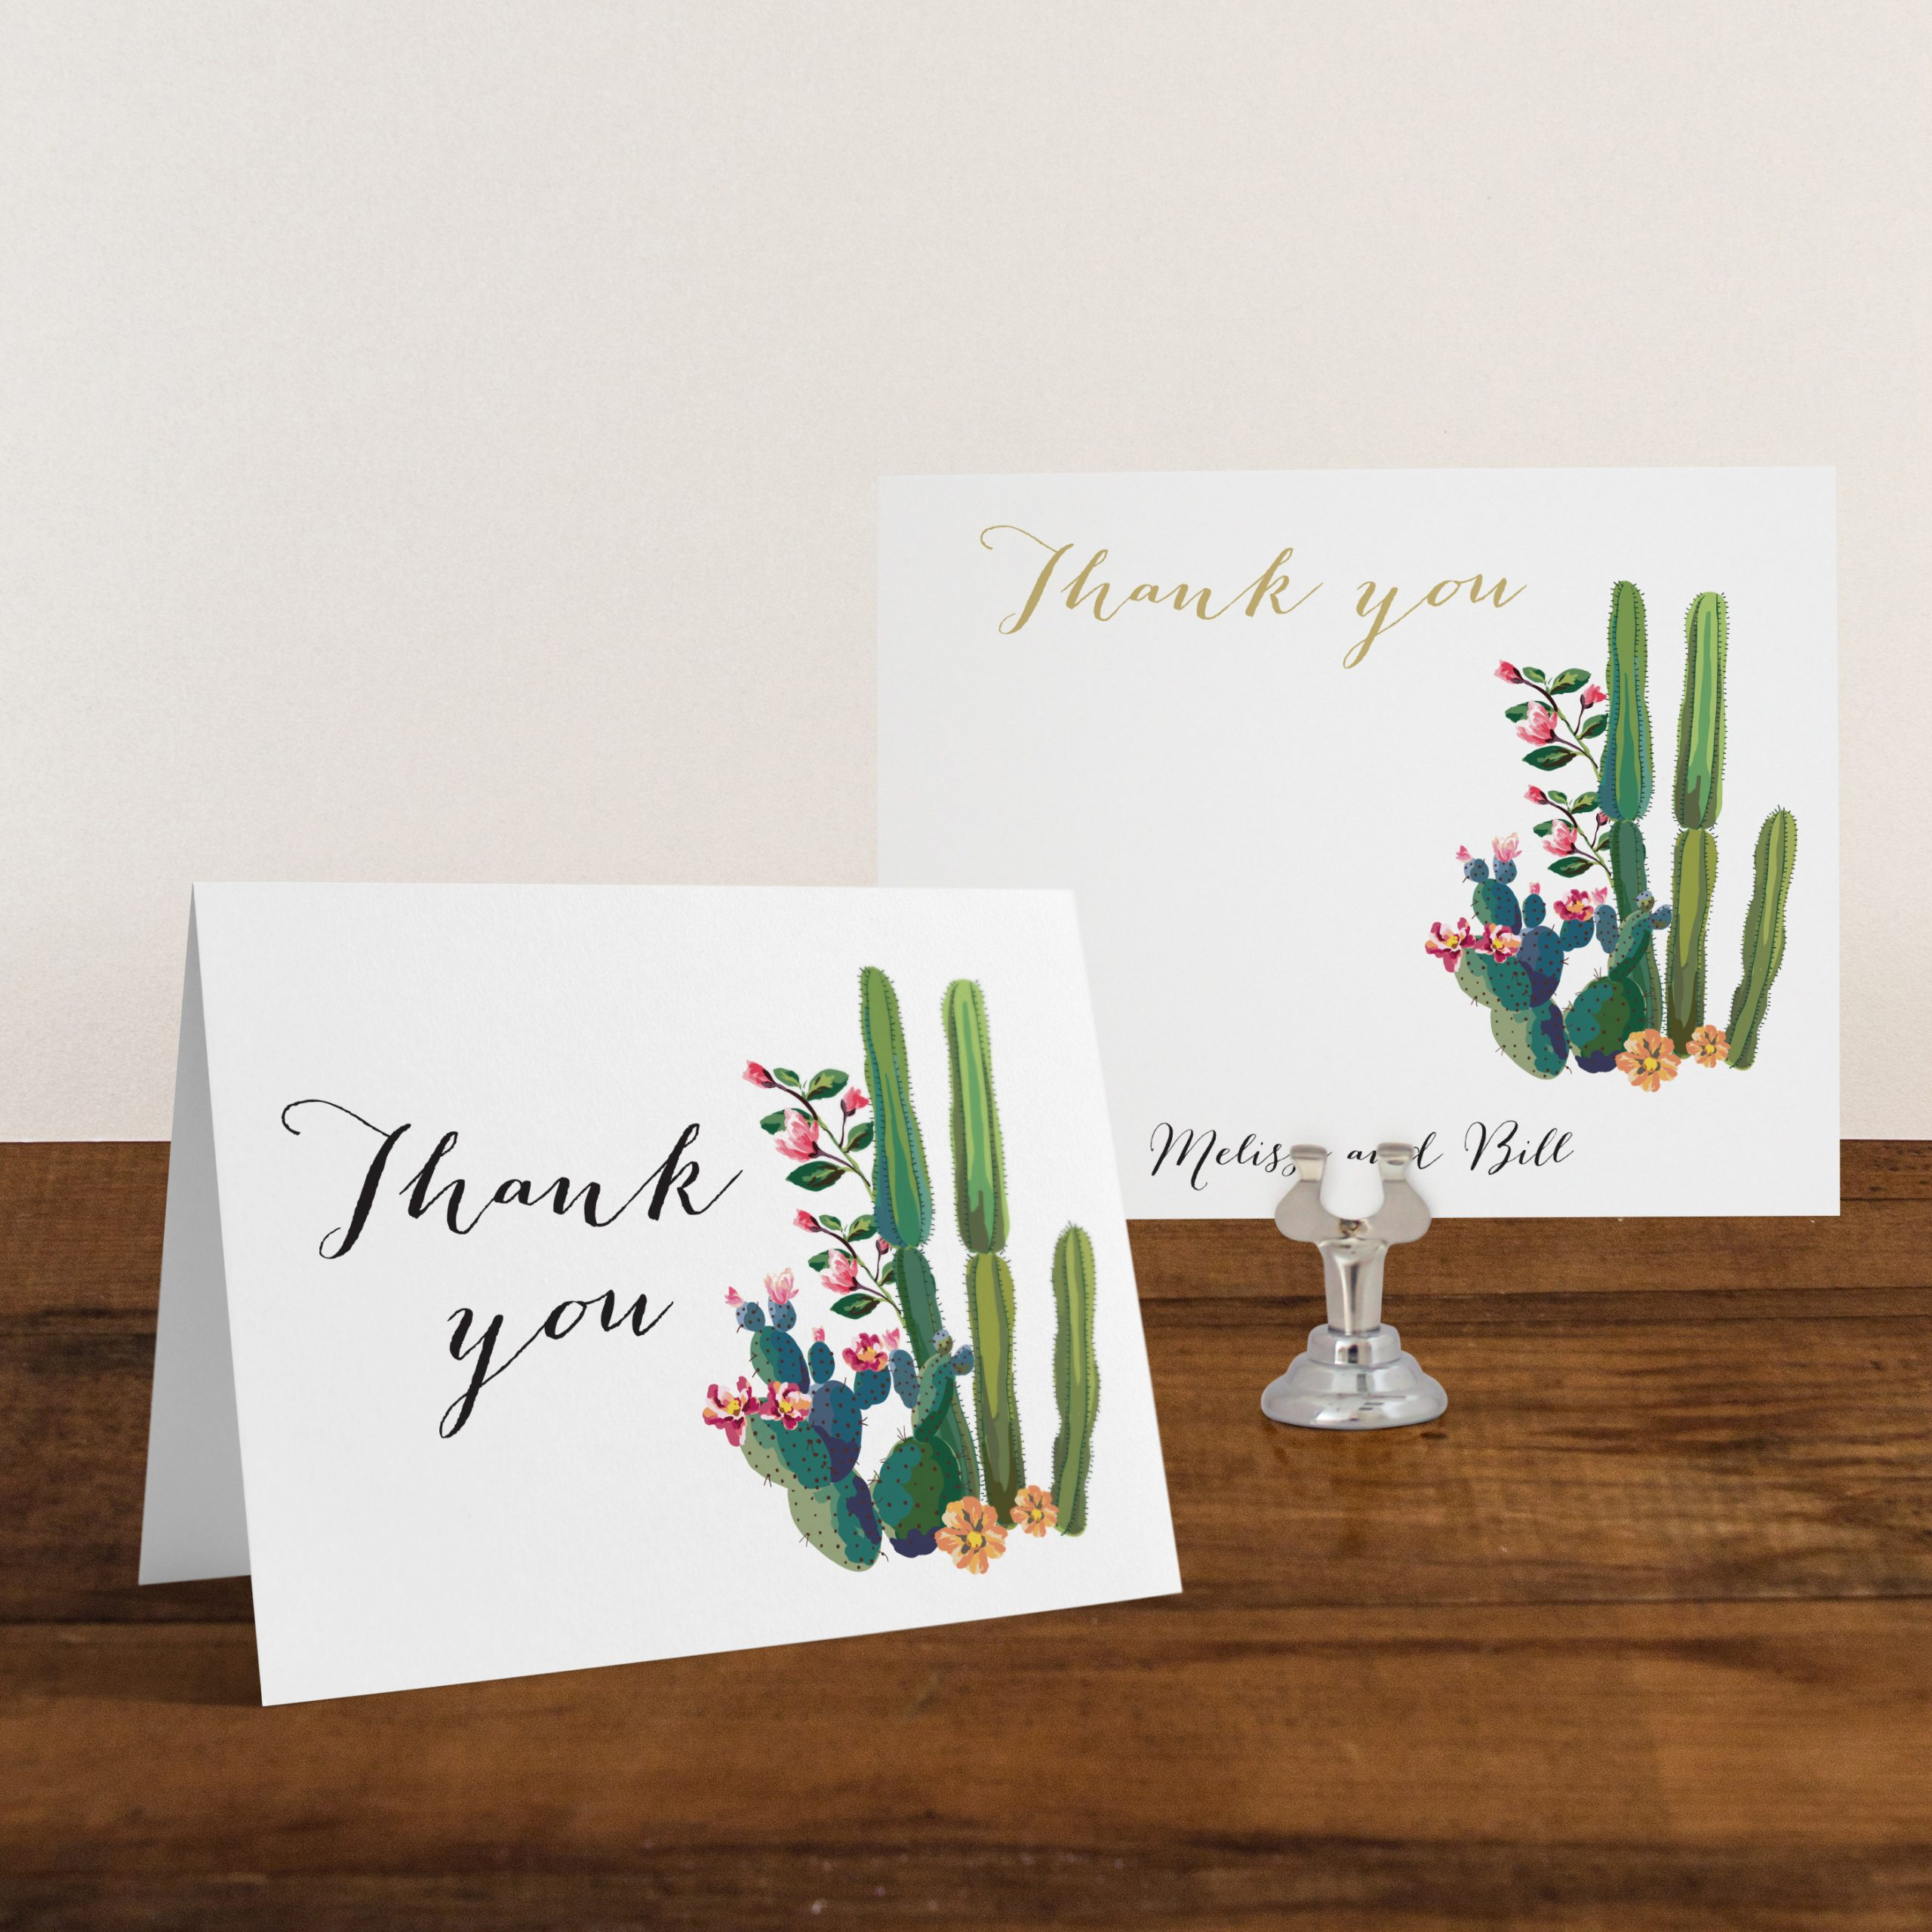 Personalized Thank You Card Folded Thank You Cards with Envelopes Pink and Navy Thank You Cards DEPOSIT